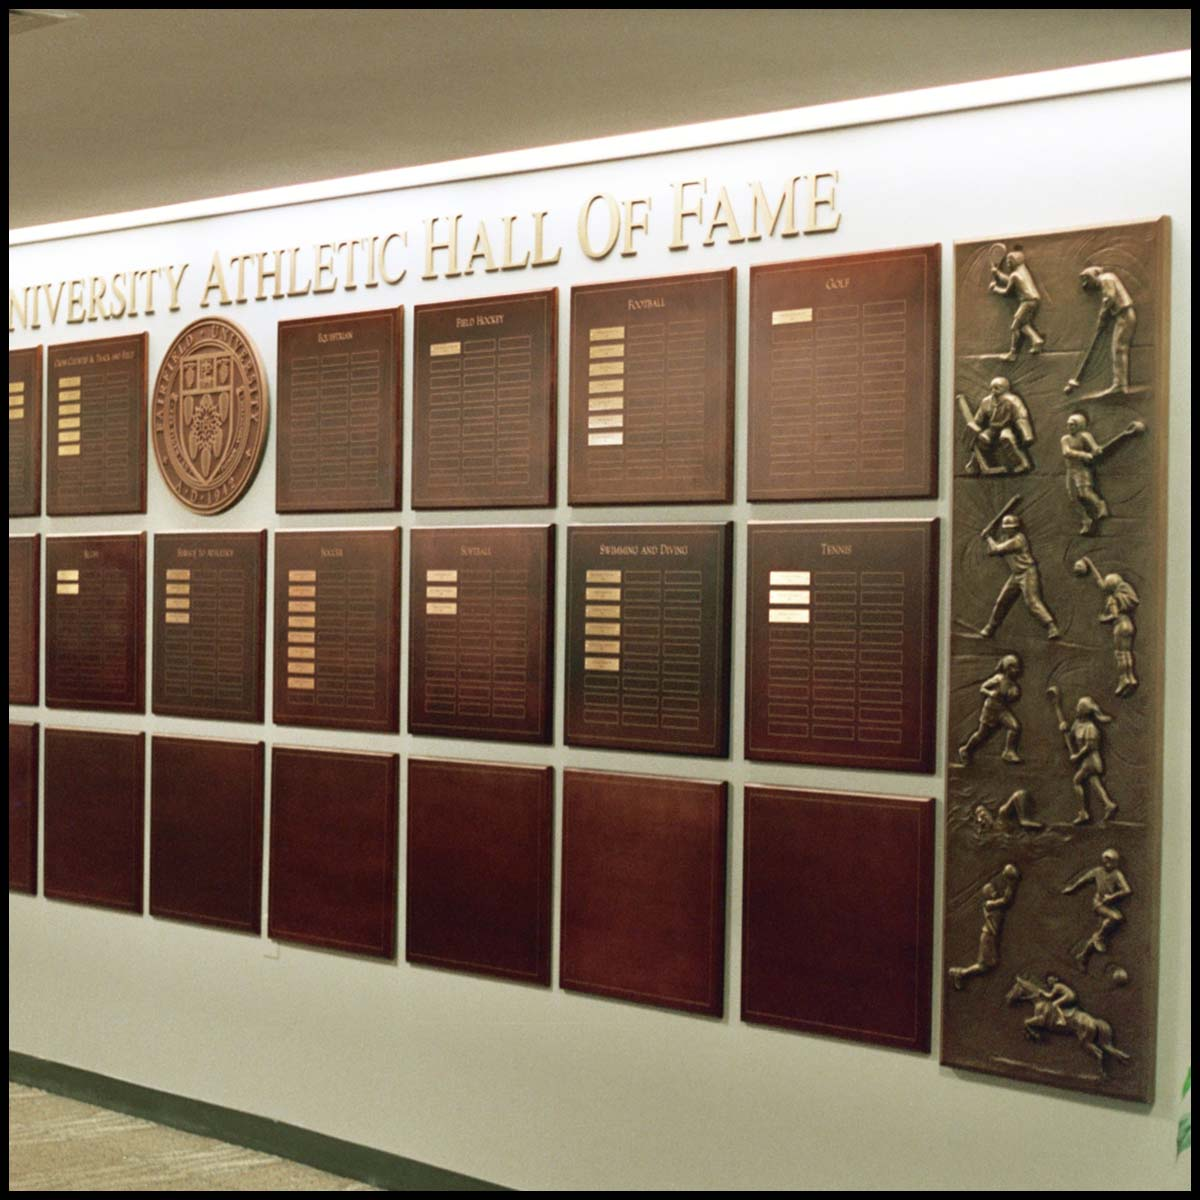 photo of white interior wall with rows of bronze-colored plaques with names on small gold-colored plaques with large bronze-colored relief of various athletes